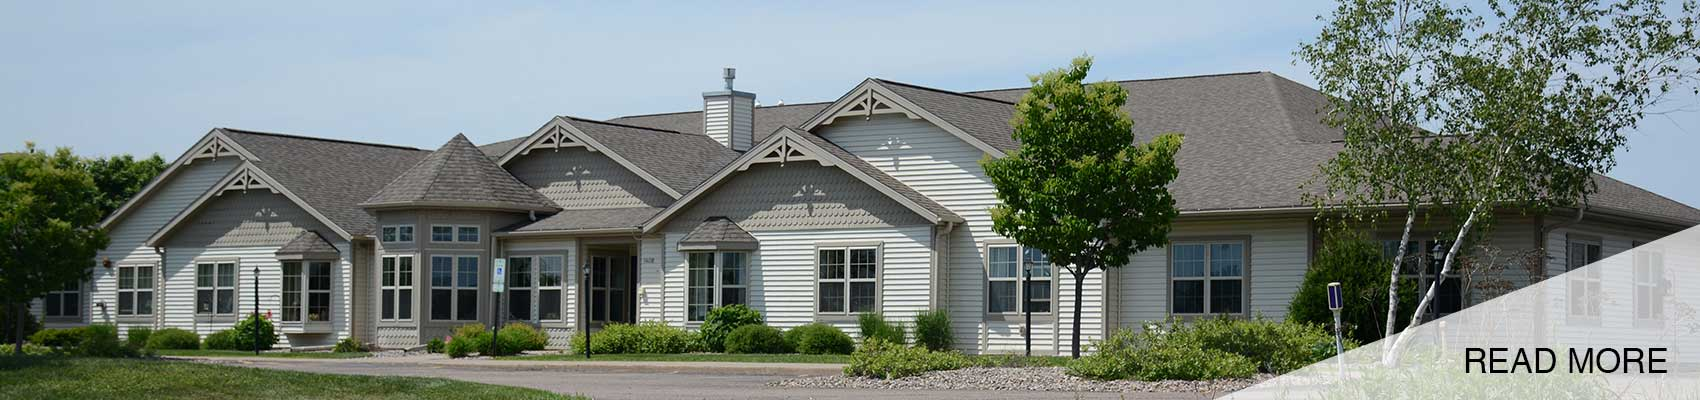 Copperleaf Senior Living   in Schofield, WI